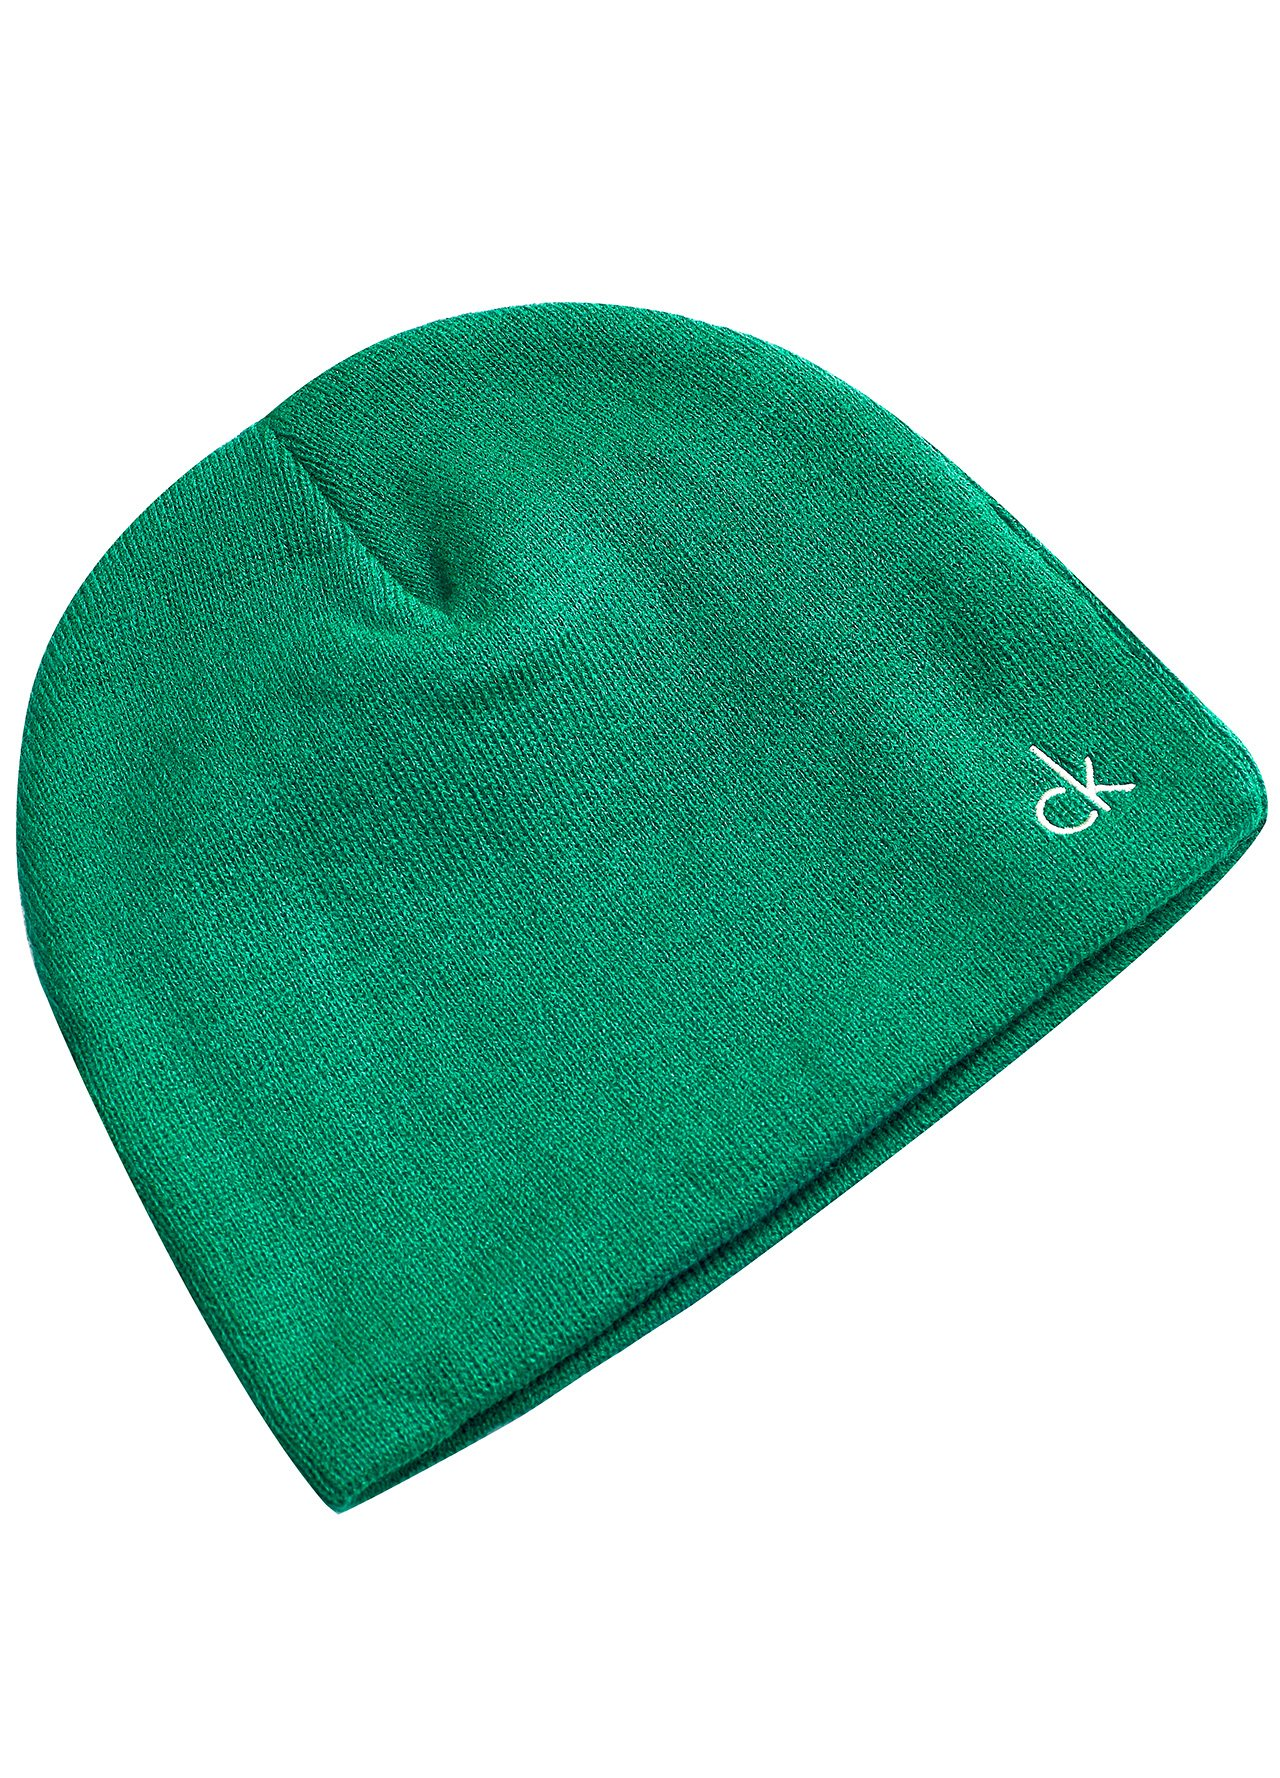 3fb5120e5a1 Calvin Klein Golf Fleece Lined Beanie Green One Size. About this product.  Picture 1 of 2  Picture 2 of 2